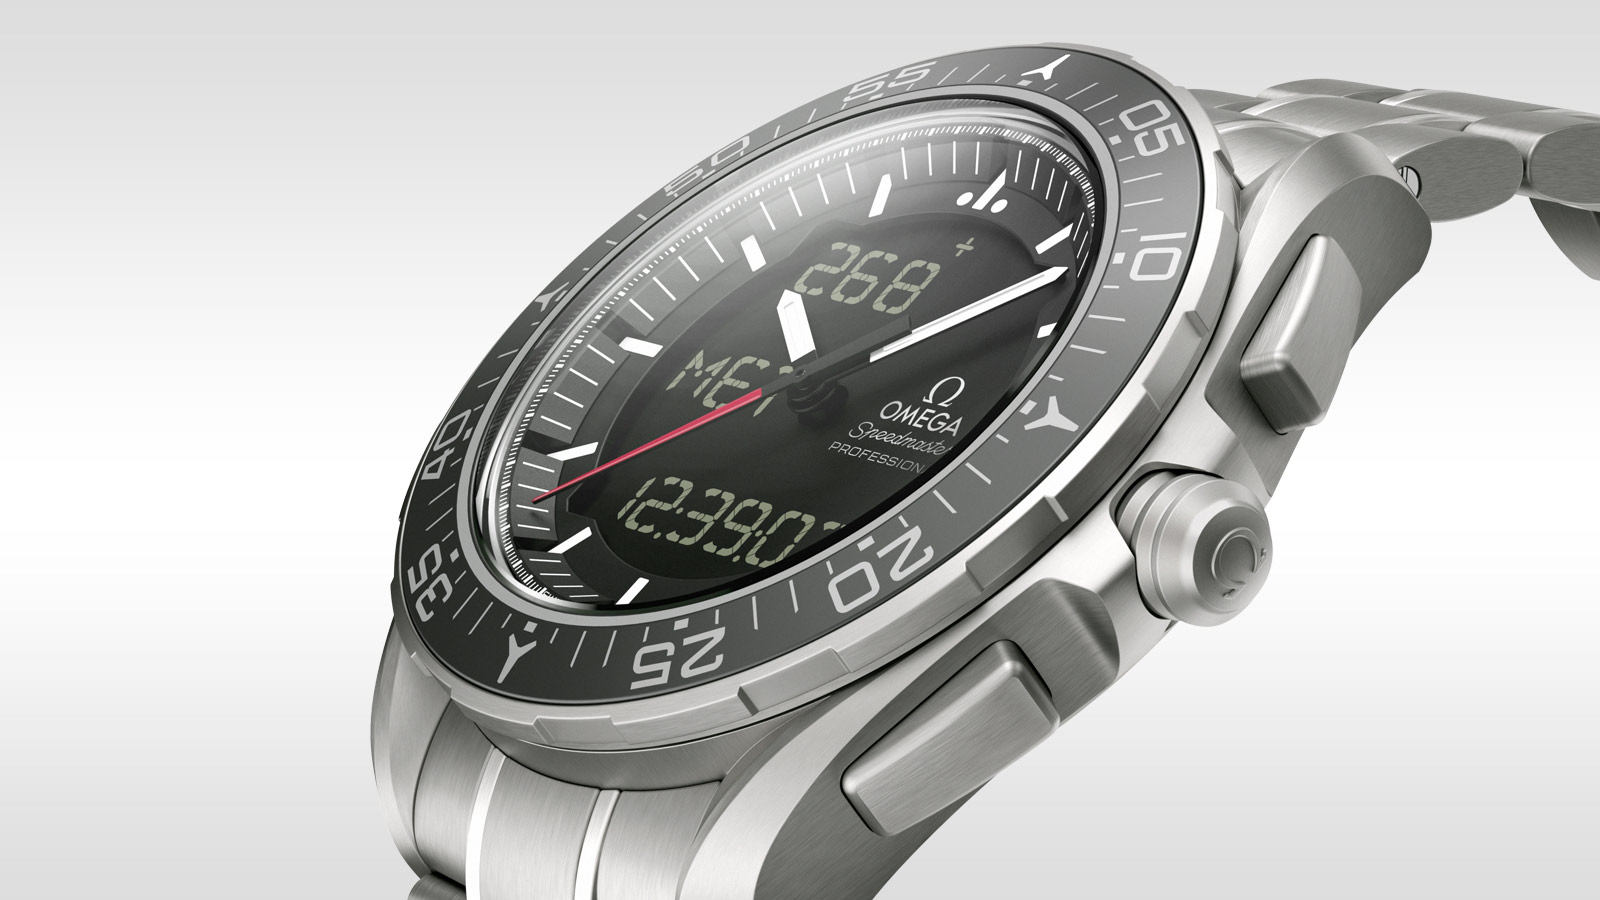 Speedmaster SKYWALKER X‑33 Skywalker X‑33 Chronograph 45 mm - 318.90.45.79.01.001 - Просмотреть 1